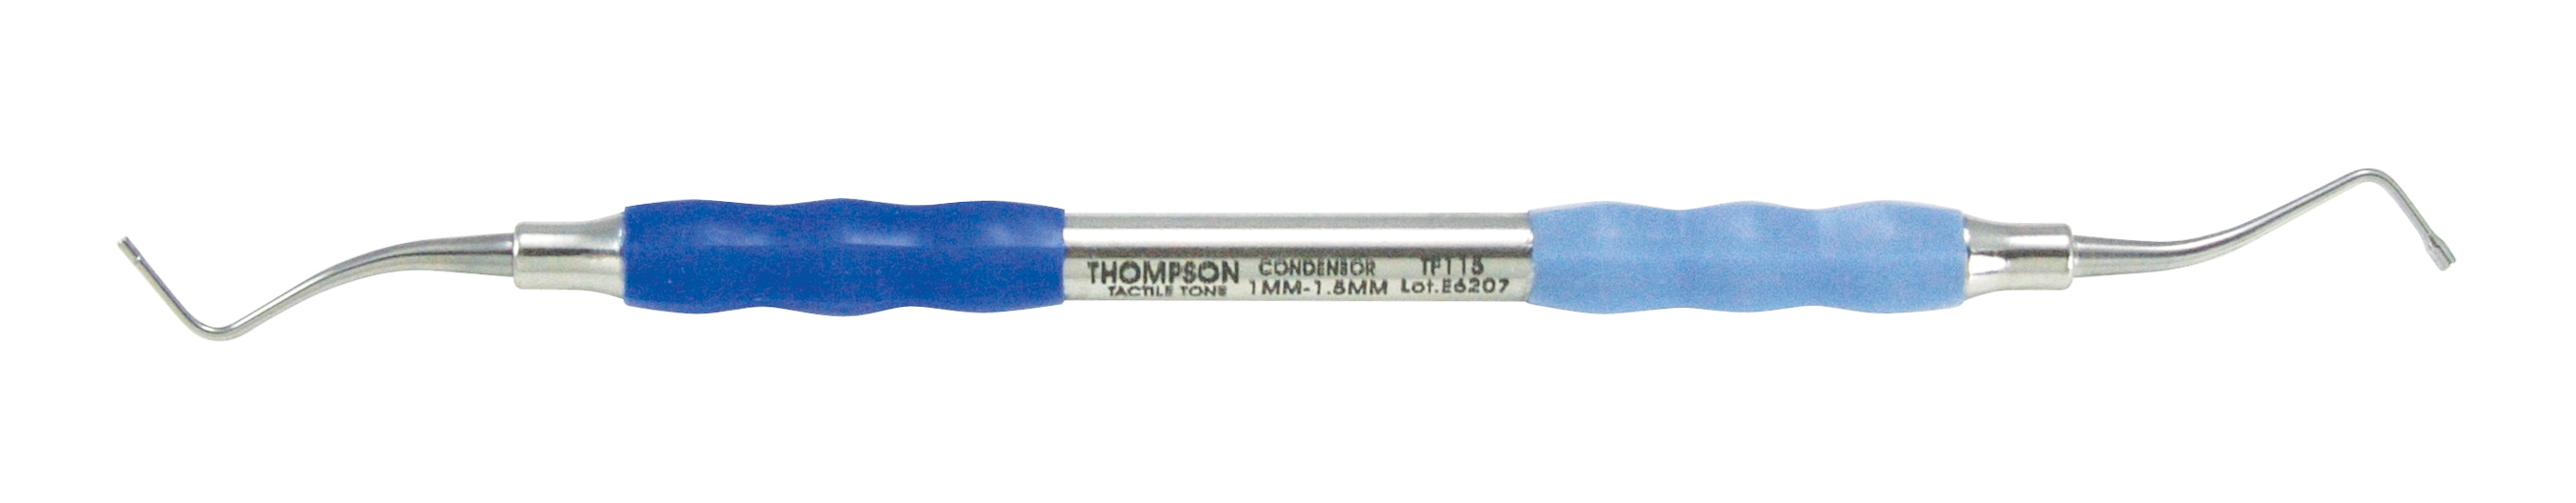 1mm-15mm-amalgam-condenser-tactile-tone-double-end-tf115-miltex.jpg